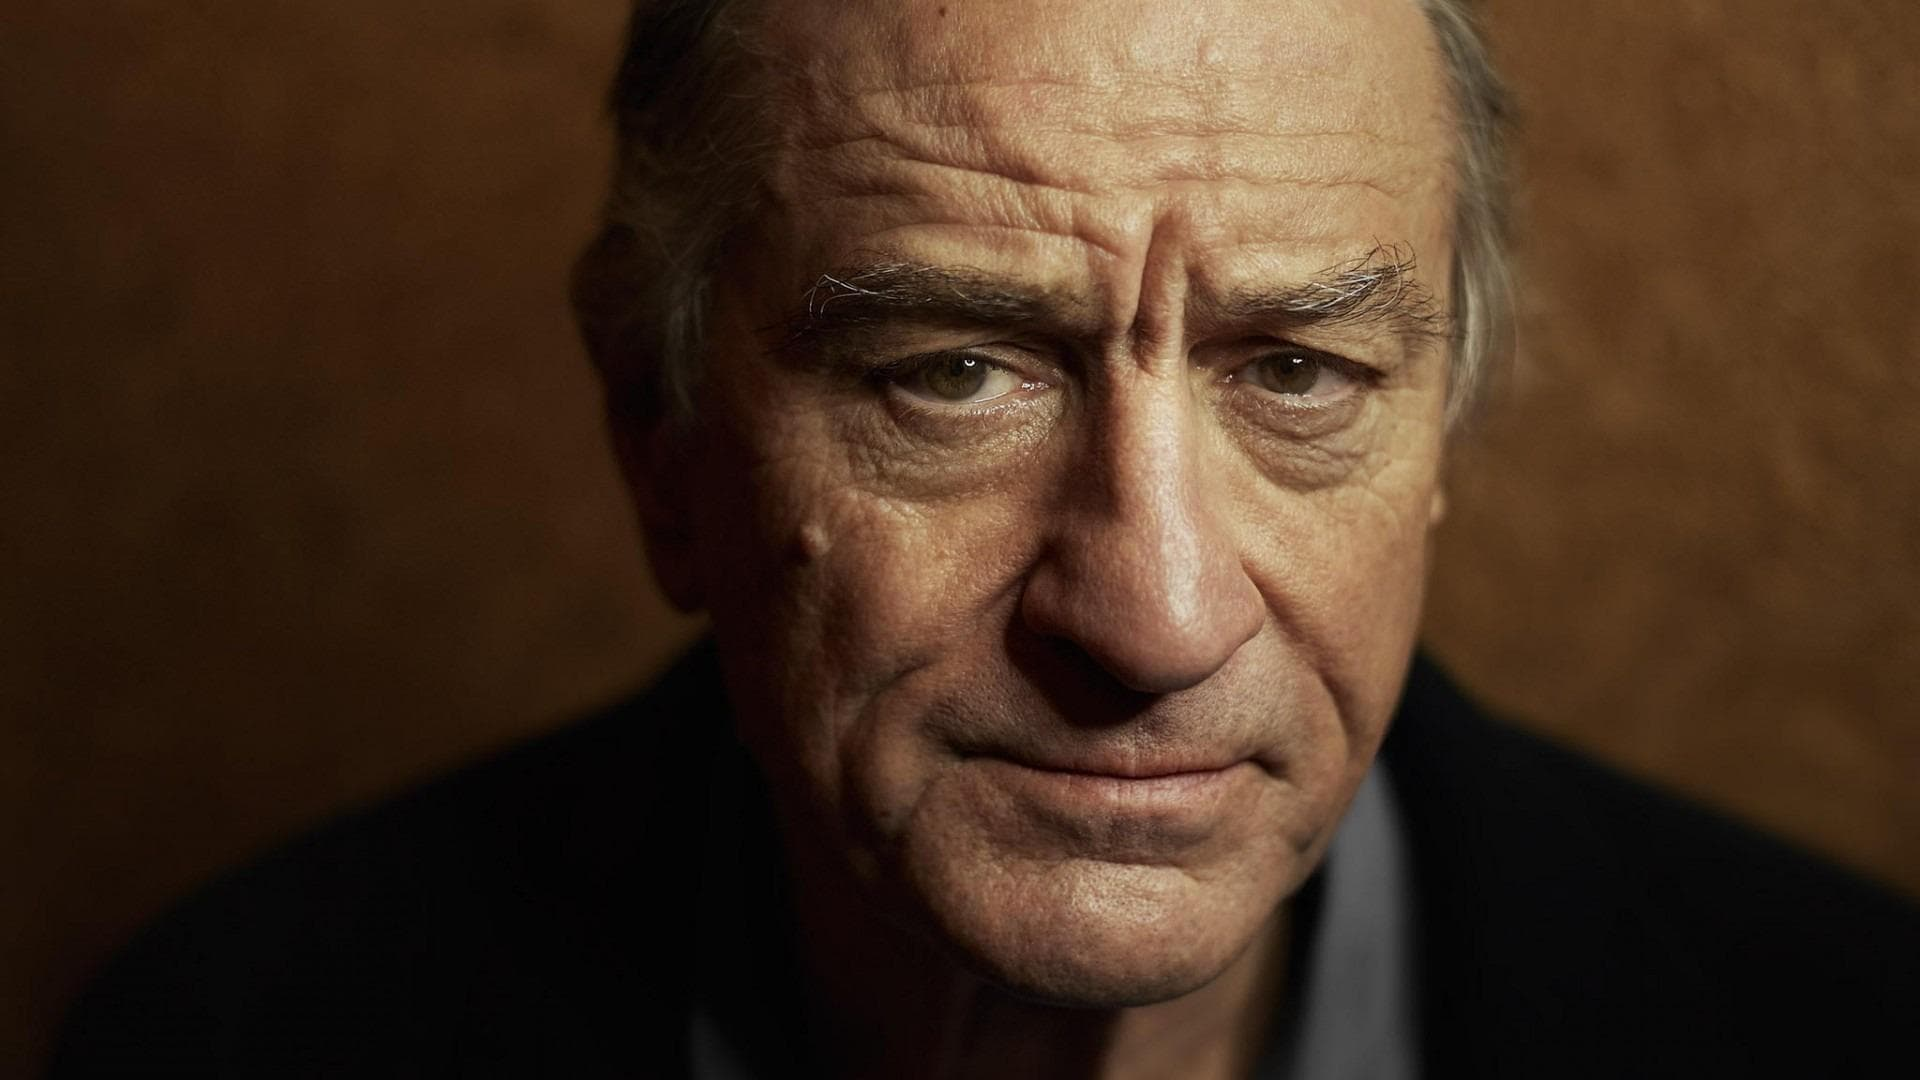 Robert De Niro Widescreen for desktop